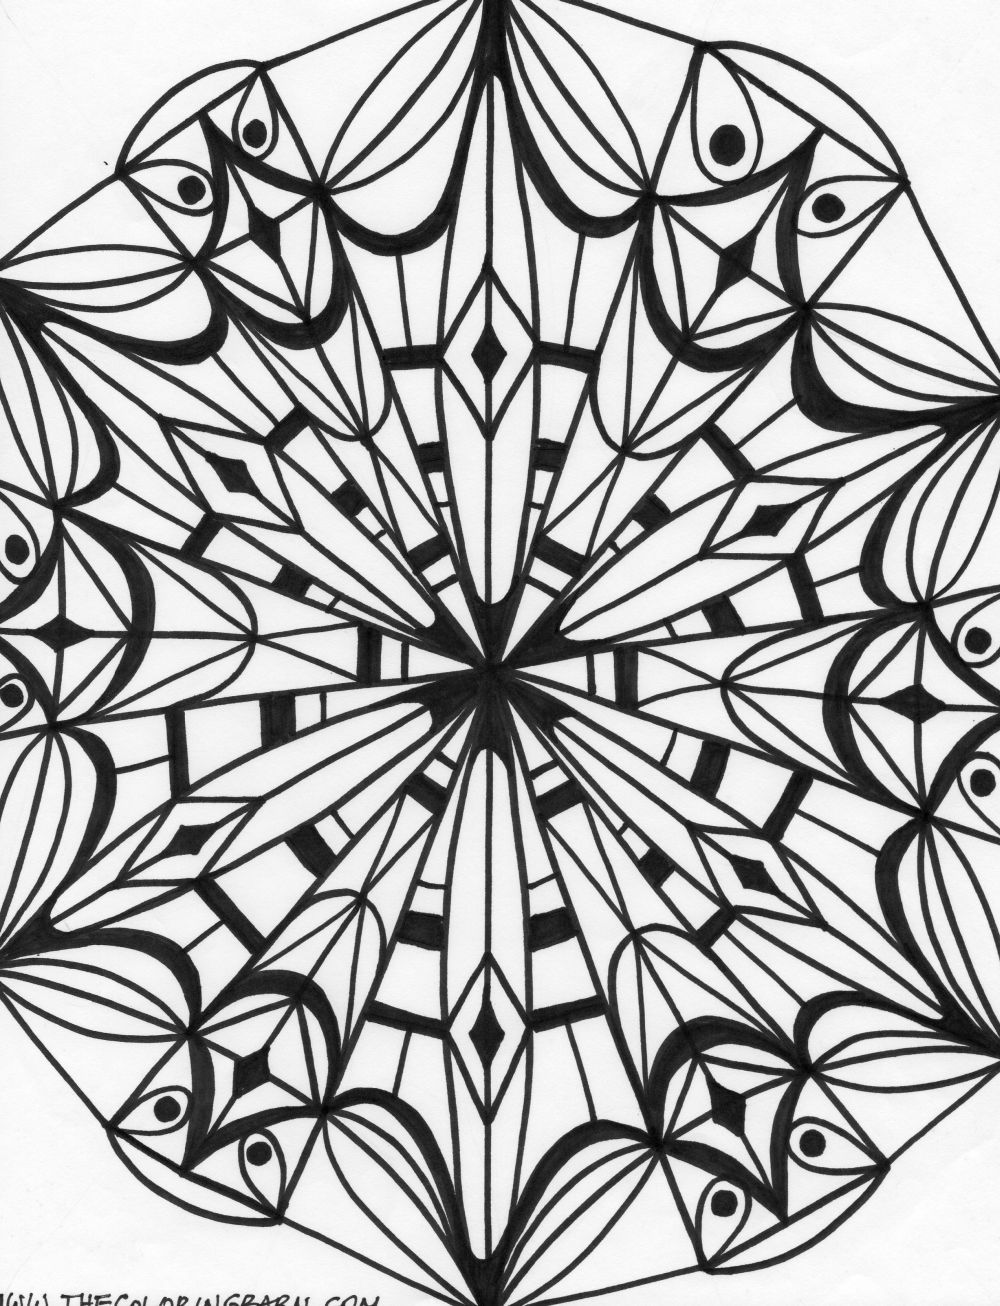 Free coloring pages kaleidoscope designs - Printable Kaleidoscope Patterns Kaleidoscope 6 Coloring Page Kaleidoscope 7 Coloring Page Kaleidoscope